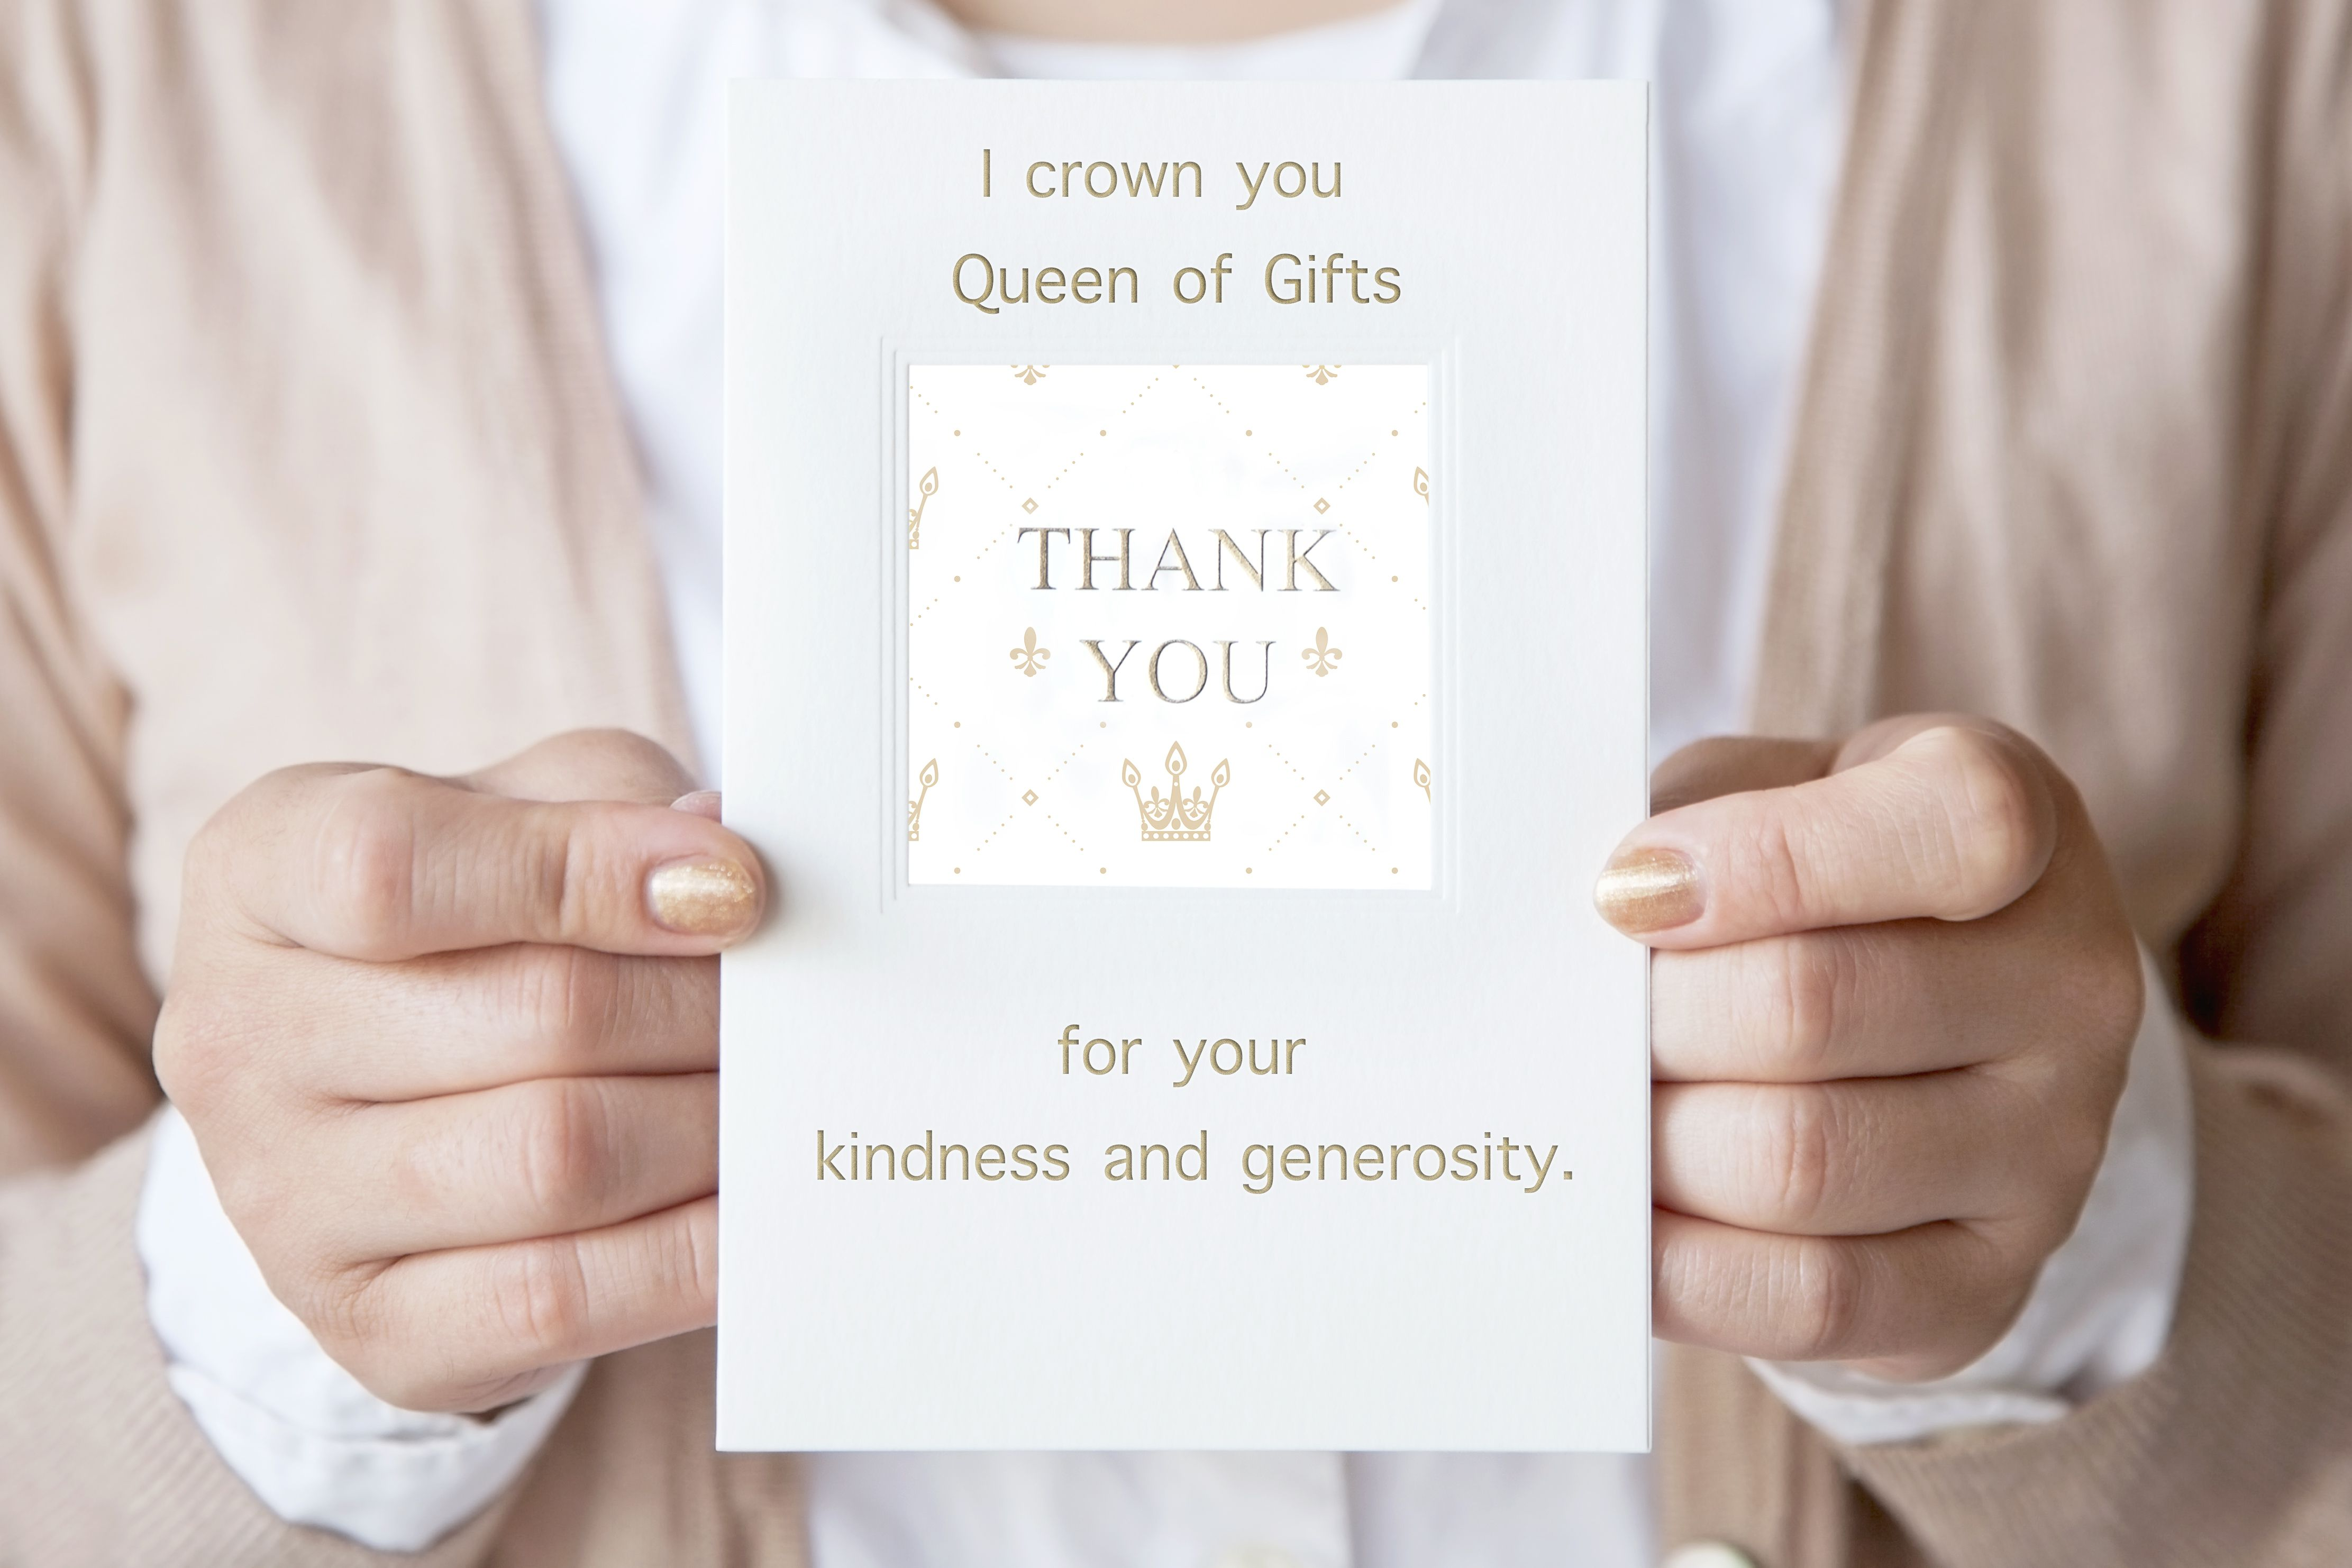 002 Archaicawful Thank You Card Wording Baby Shower Gift Inspiration  For Multiple GroupFull